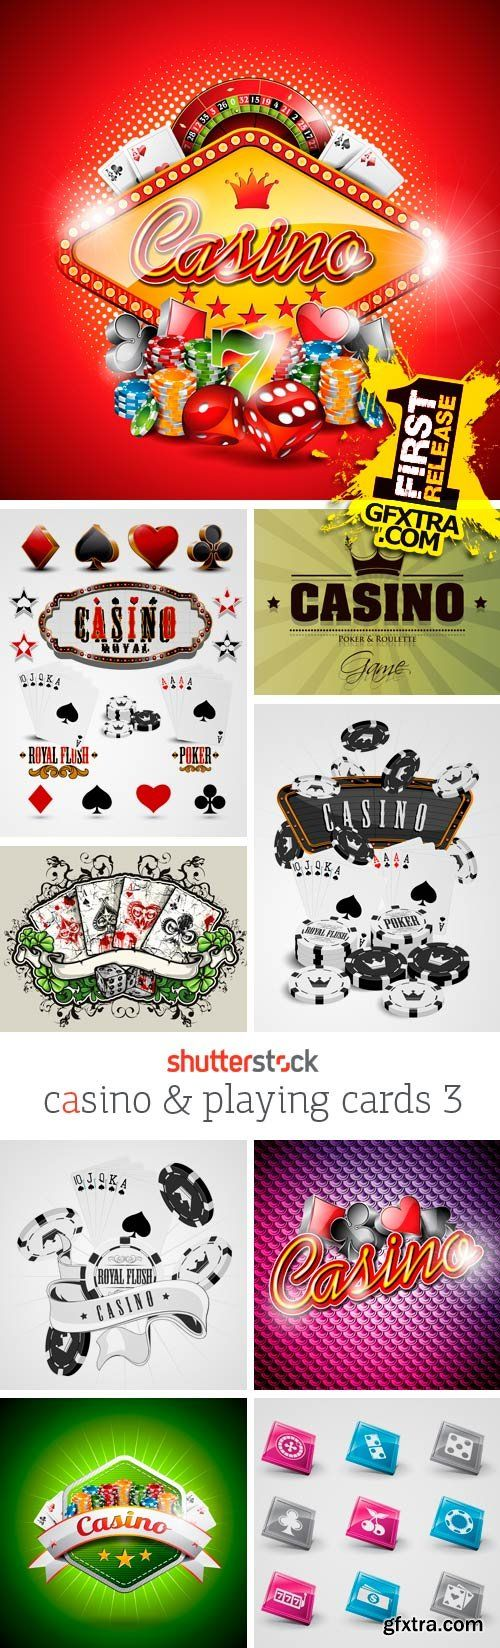 T shirt design 4 25x eps - Amazing Ss Casino Playing Cards 3 25xeps